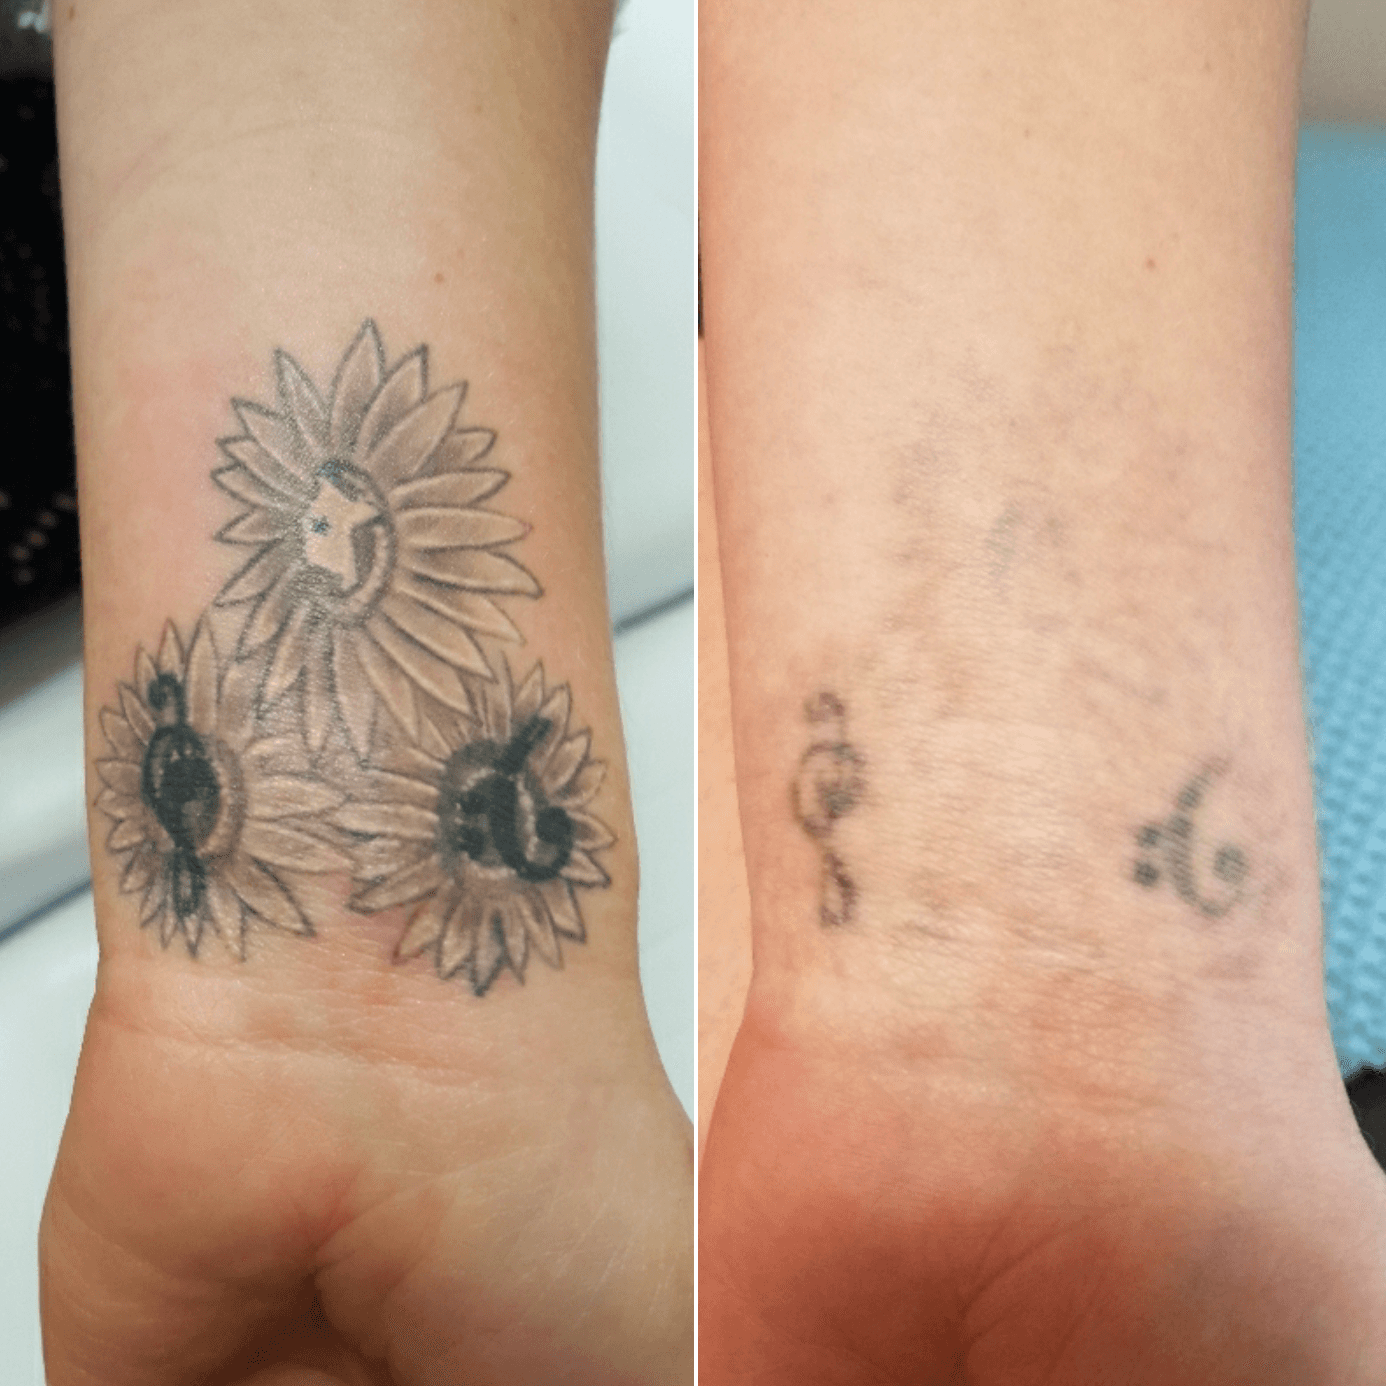 Before & After Tattoo Removal - Laser Focus Tattoo Removal